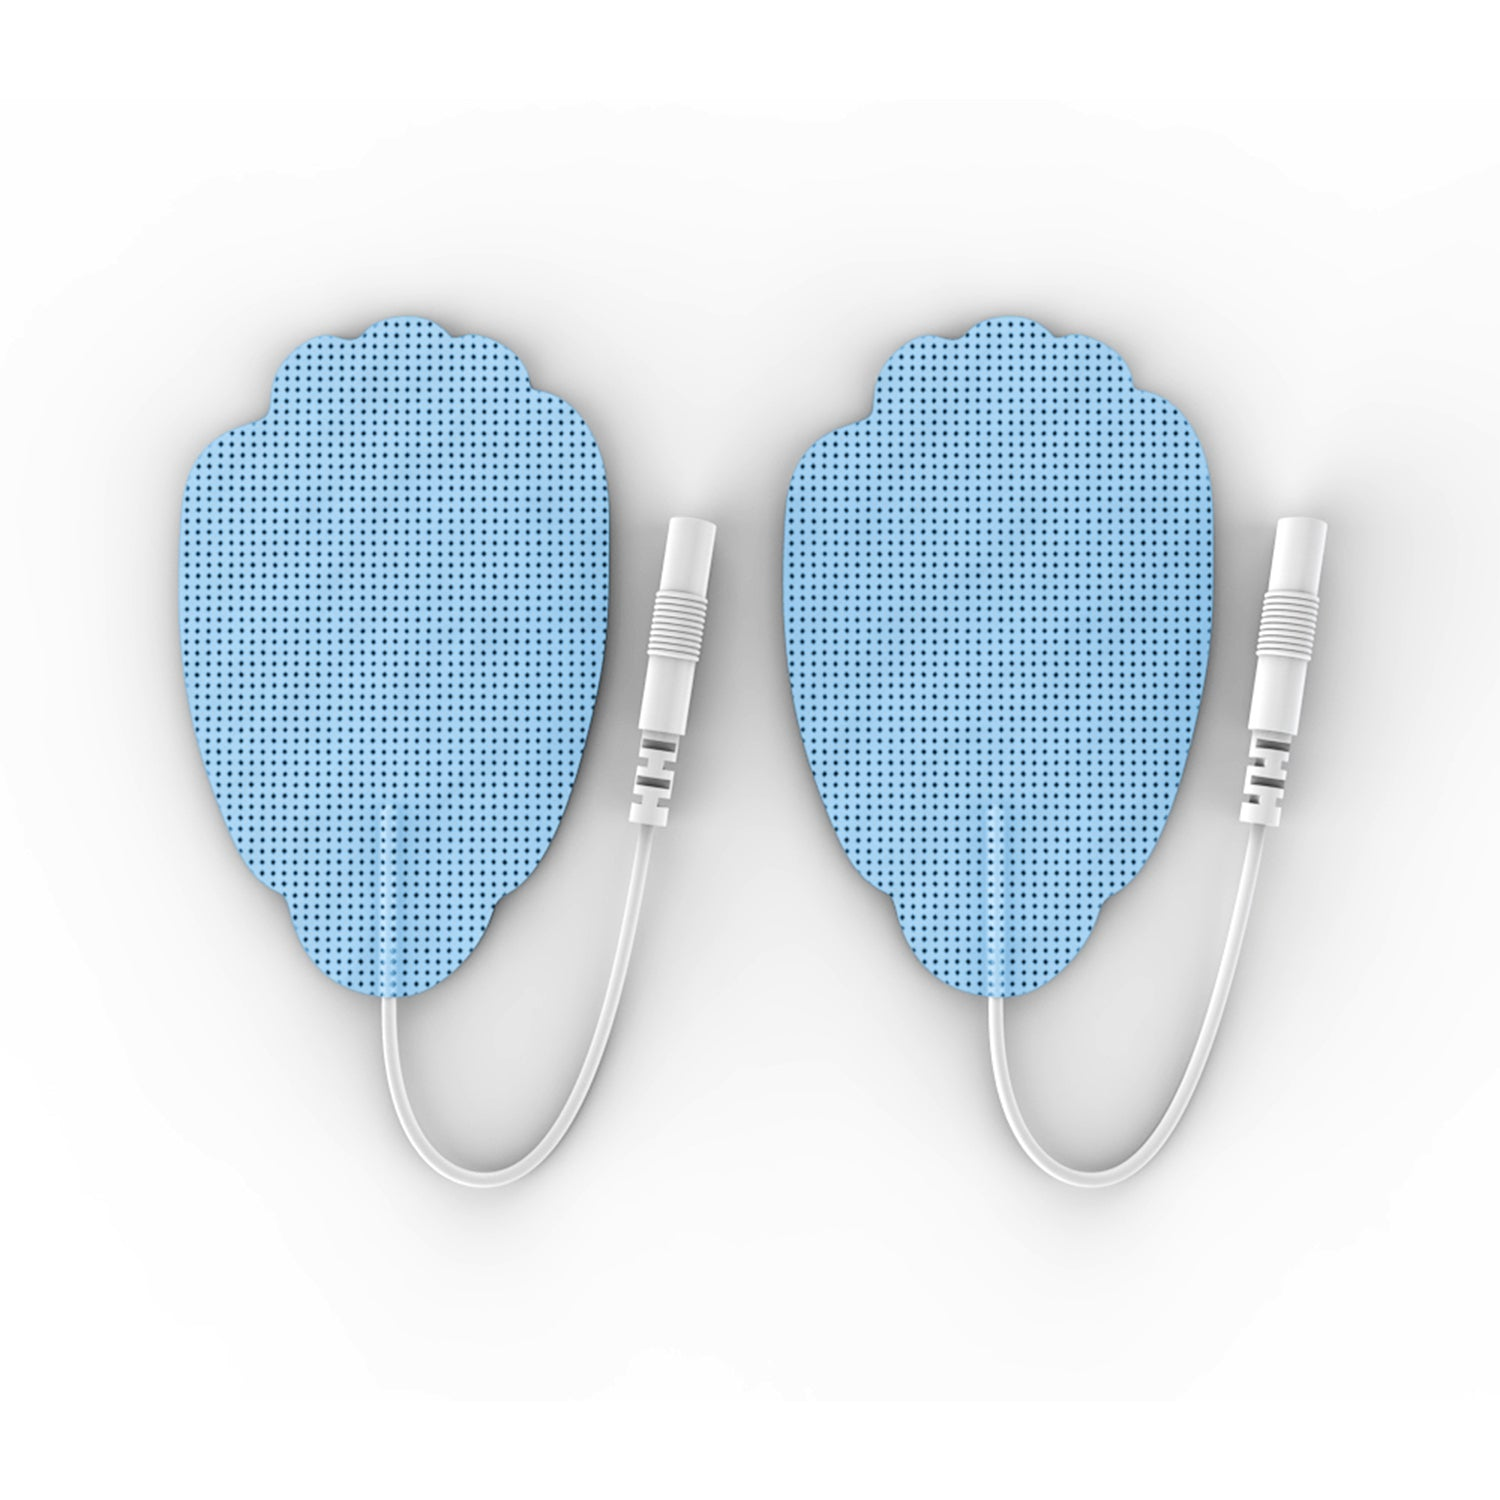 Pair of Pin-Insert Large Hand-Shaped Pads